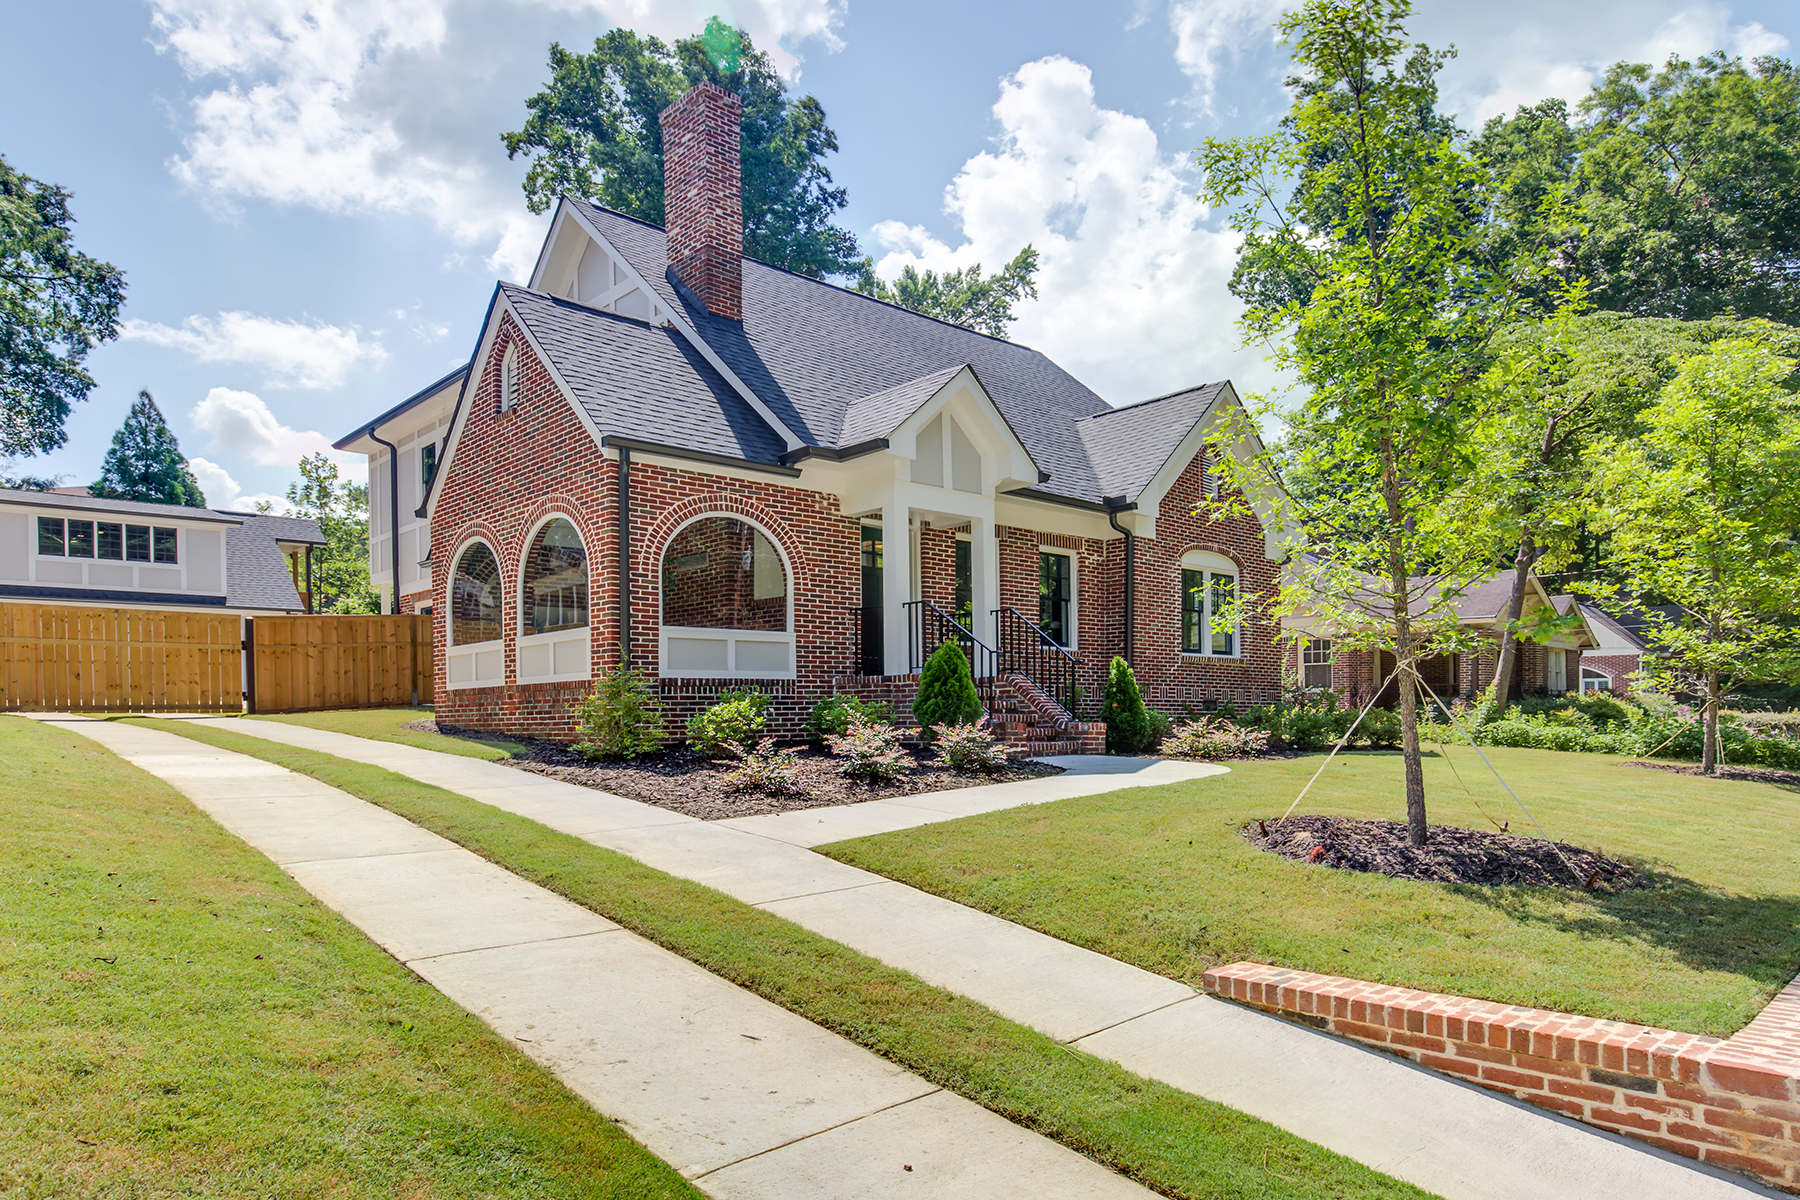 Single Family Home for Sale at Rare Opportunity Total Renovation And Addition in Sought-After Druid Hills 463 Burlington Road NE Atlanta, Georgia 30307 United States